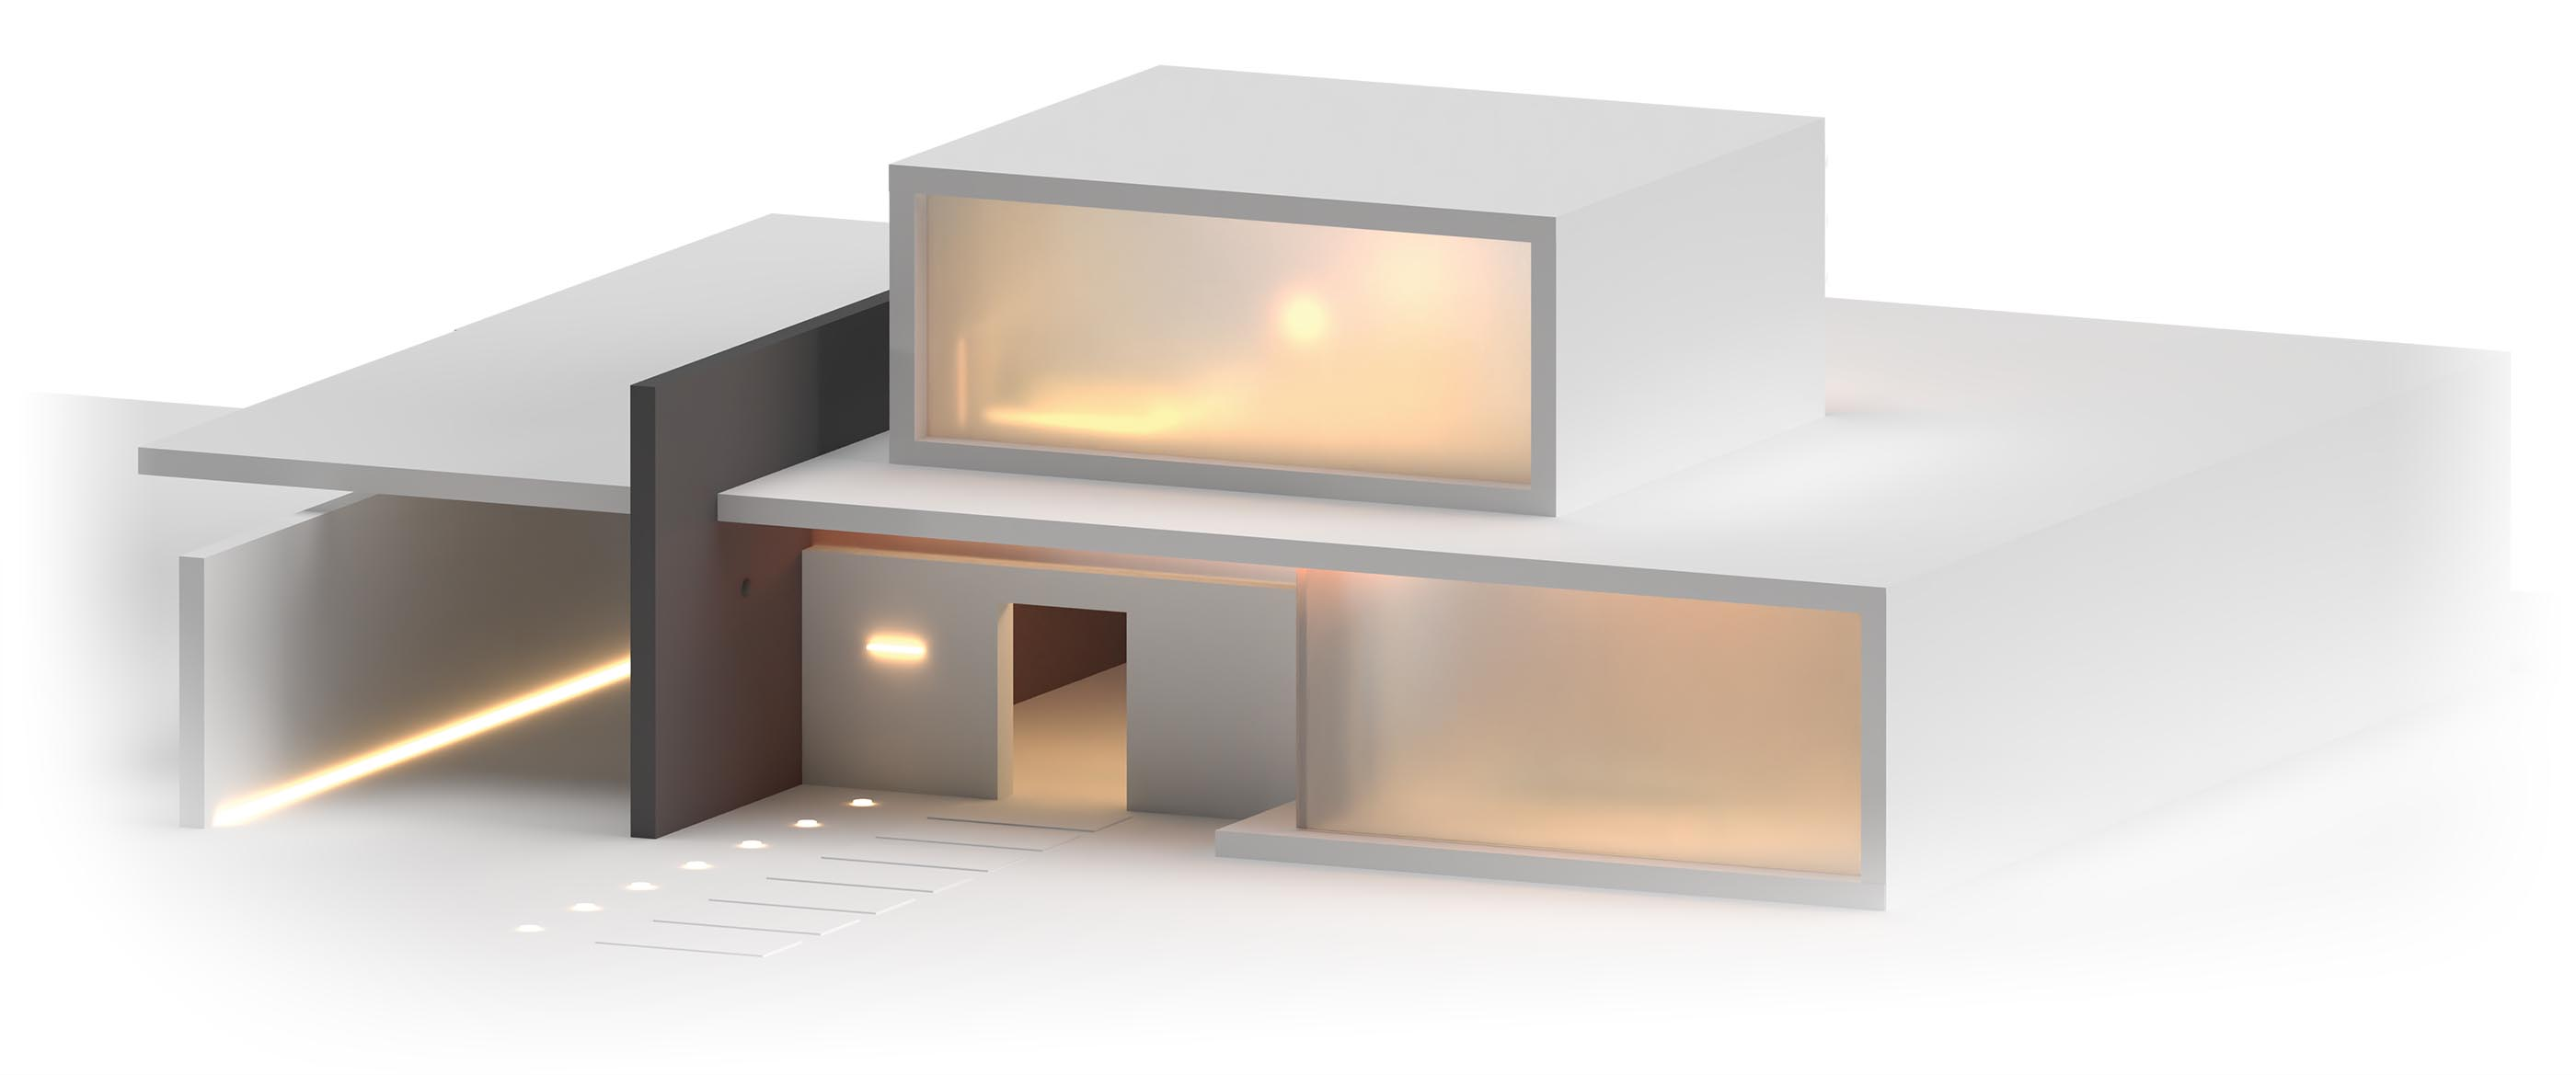 A 3D render of a high end house with an open front door.